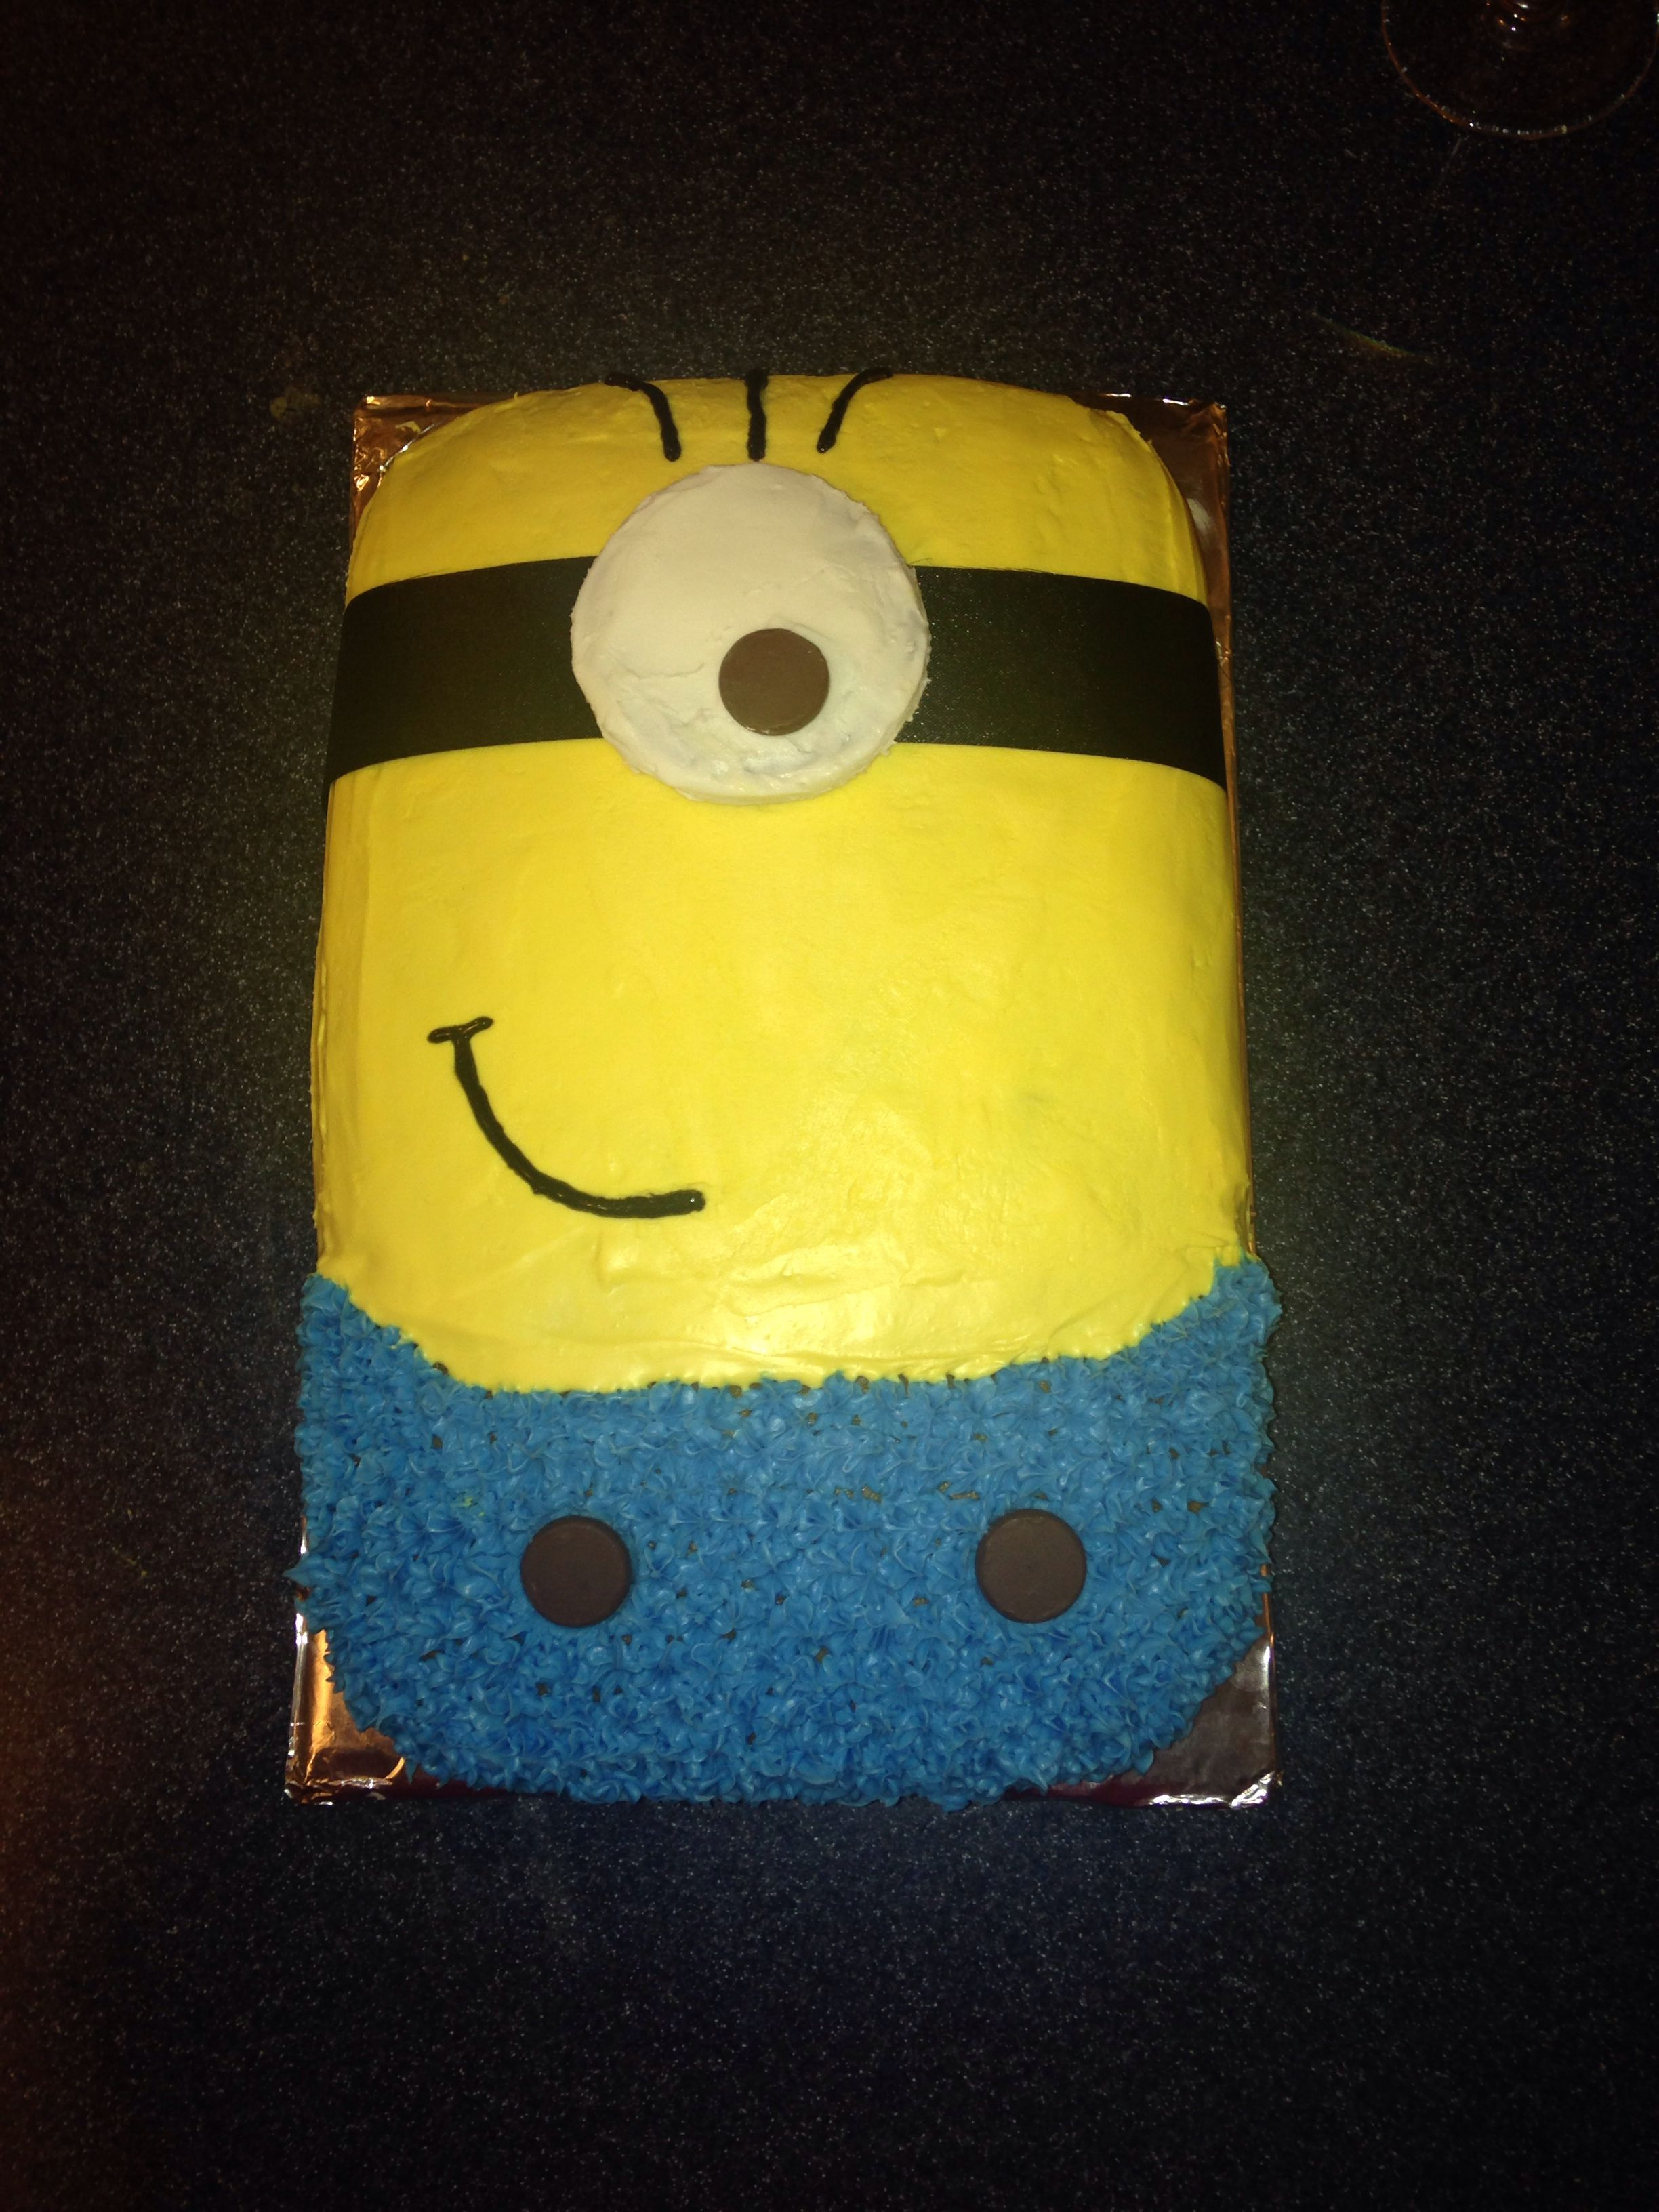 Minion Cake Rounded 9 X 13 Pan Hershey Kisses As Buttons On The